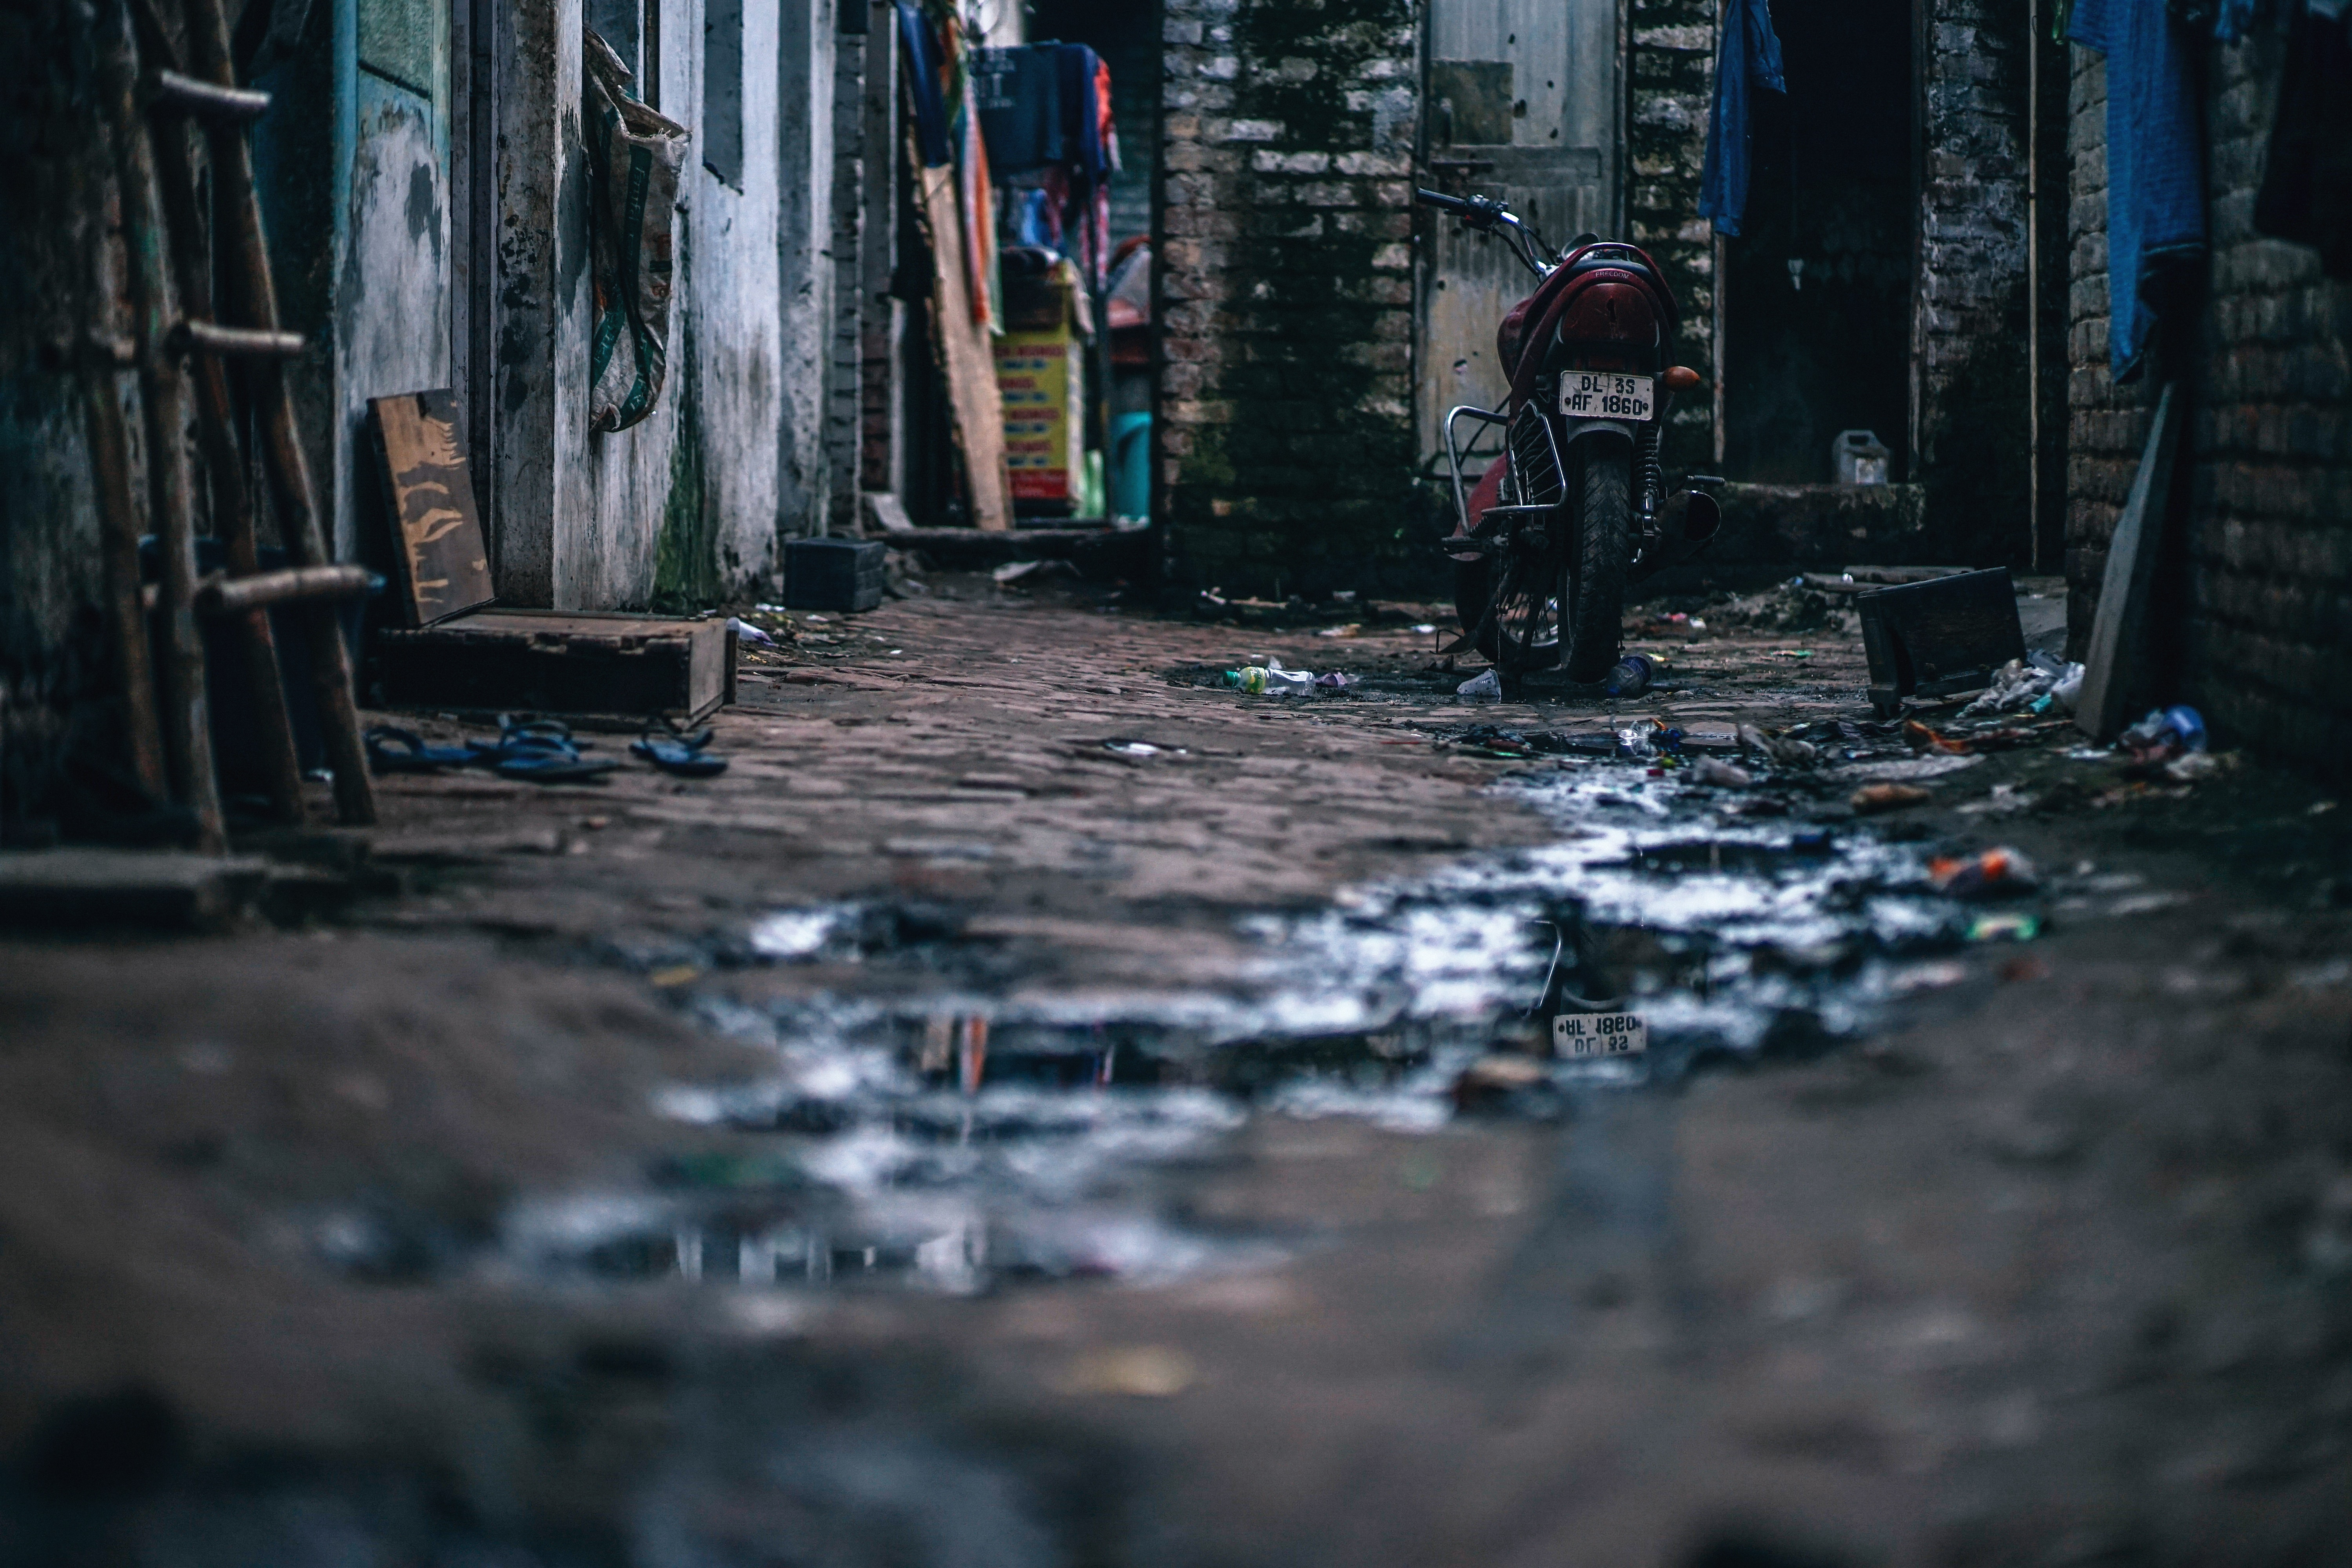 Motorcycle in the Middle of Street, Alley, Parked, Water, Waste, HQ Photo